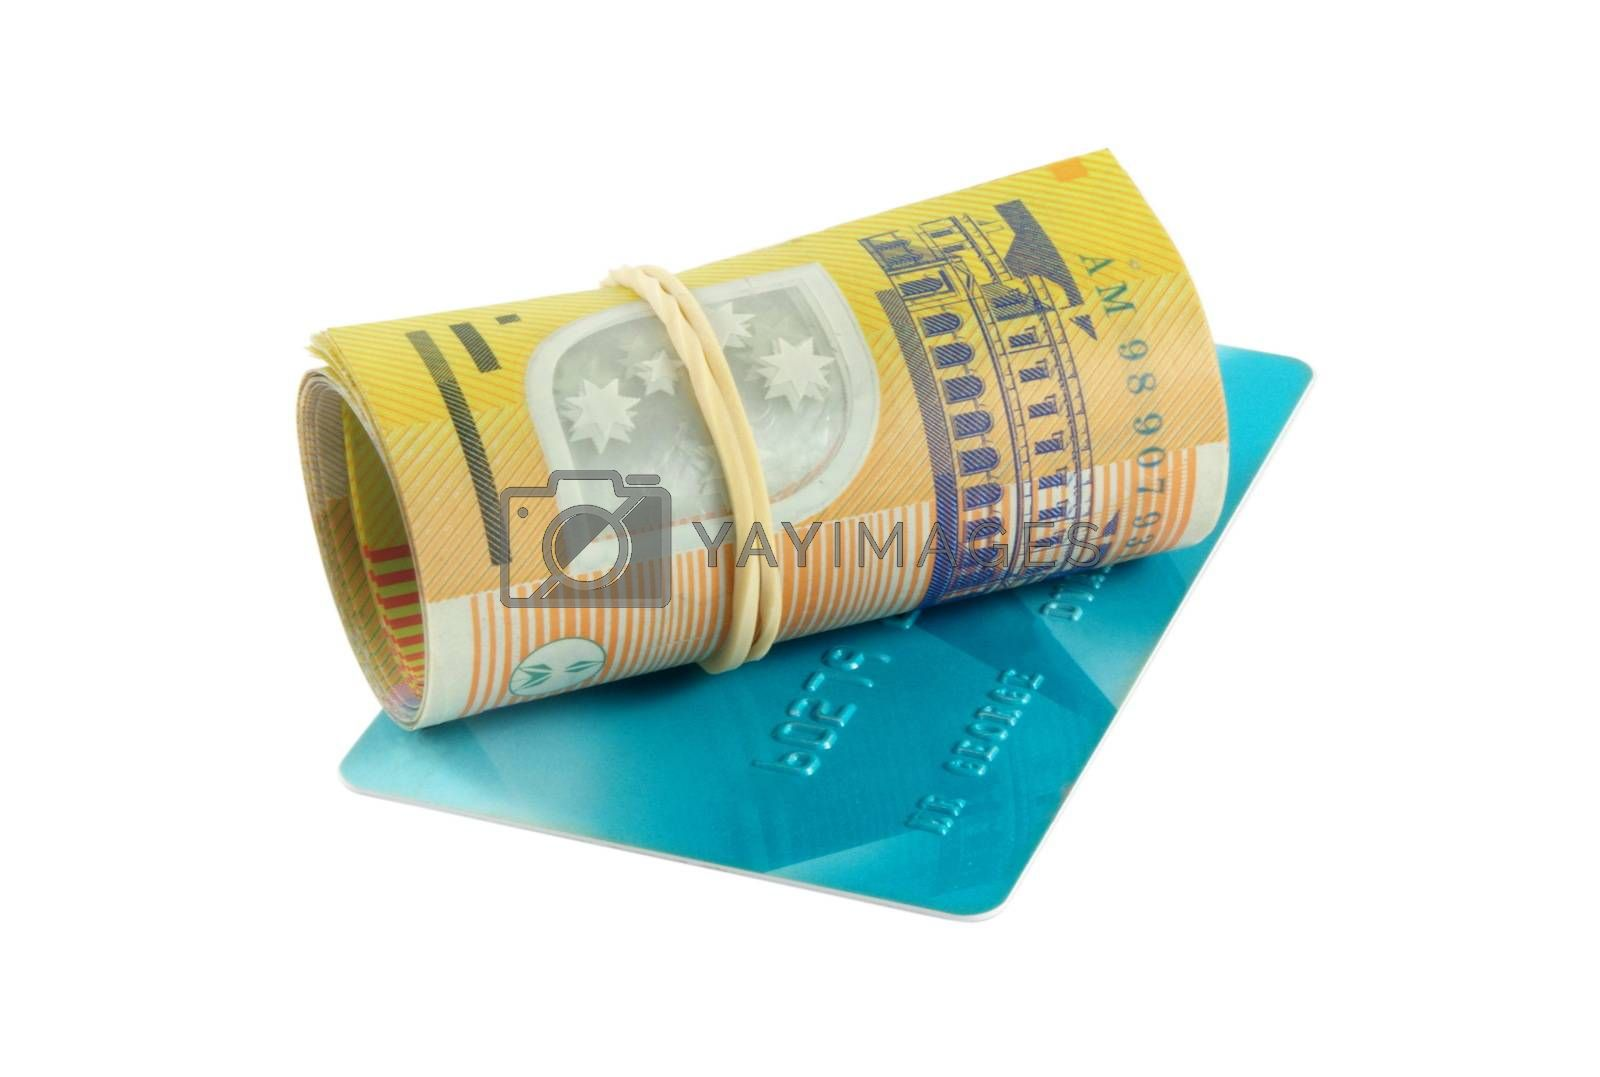 australian money and credit card isolated on white